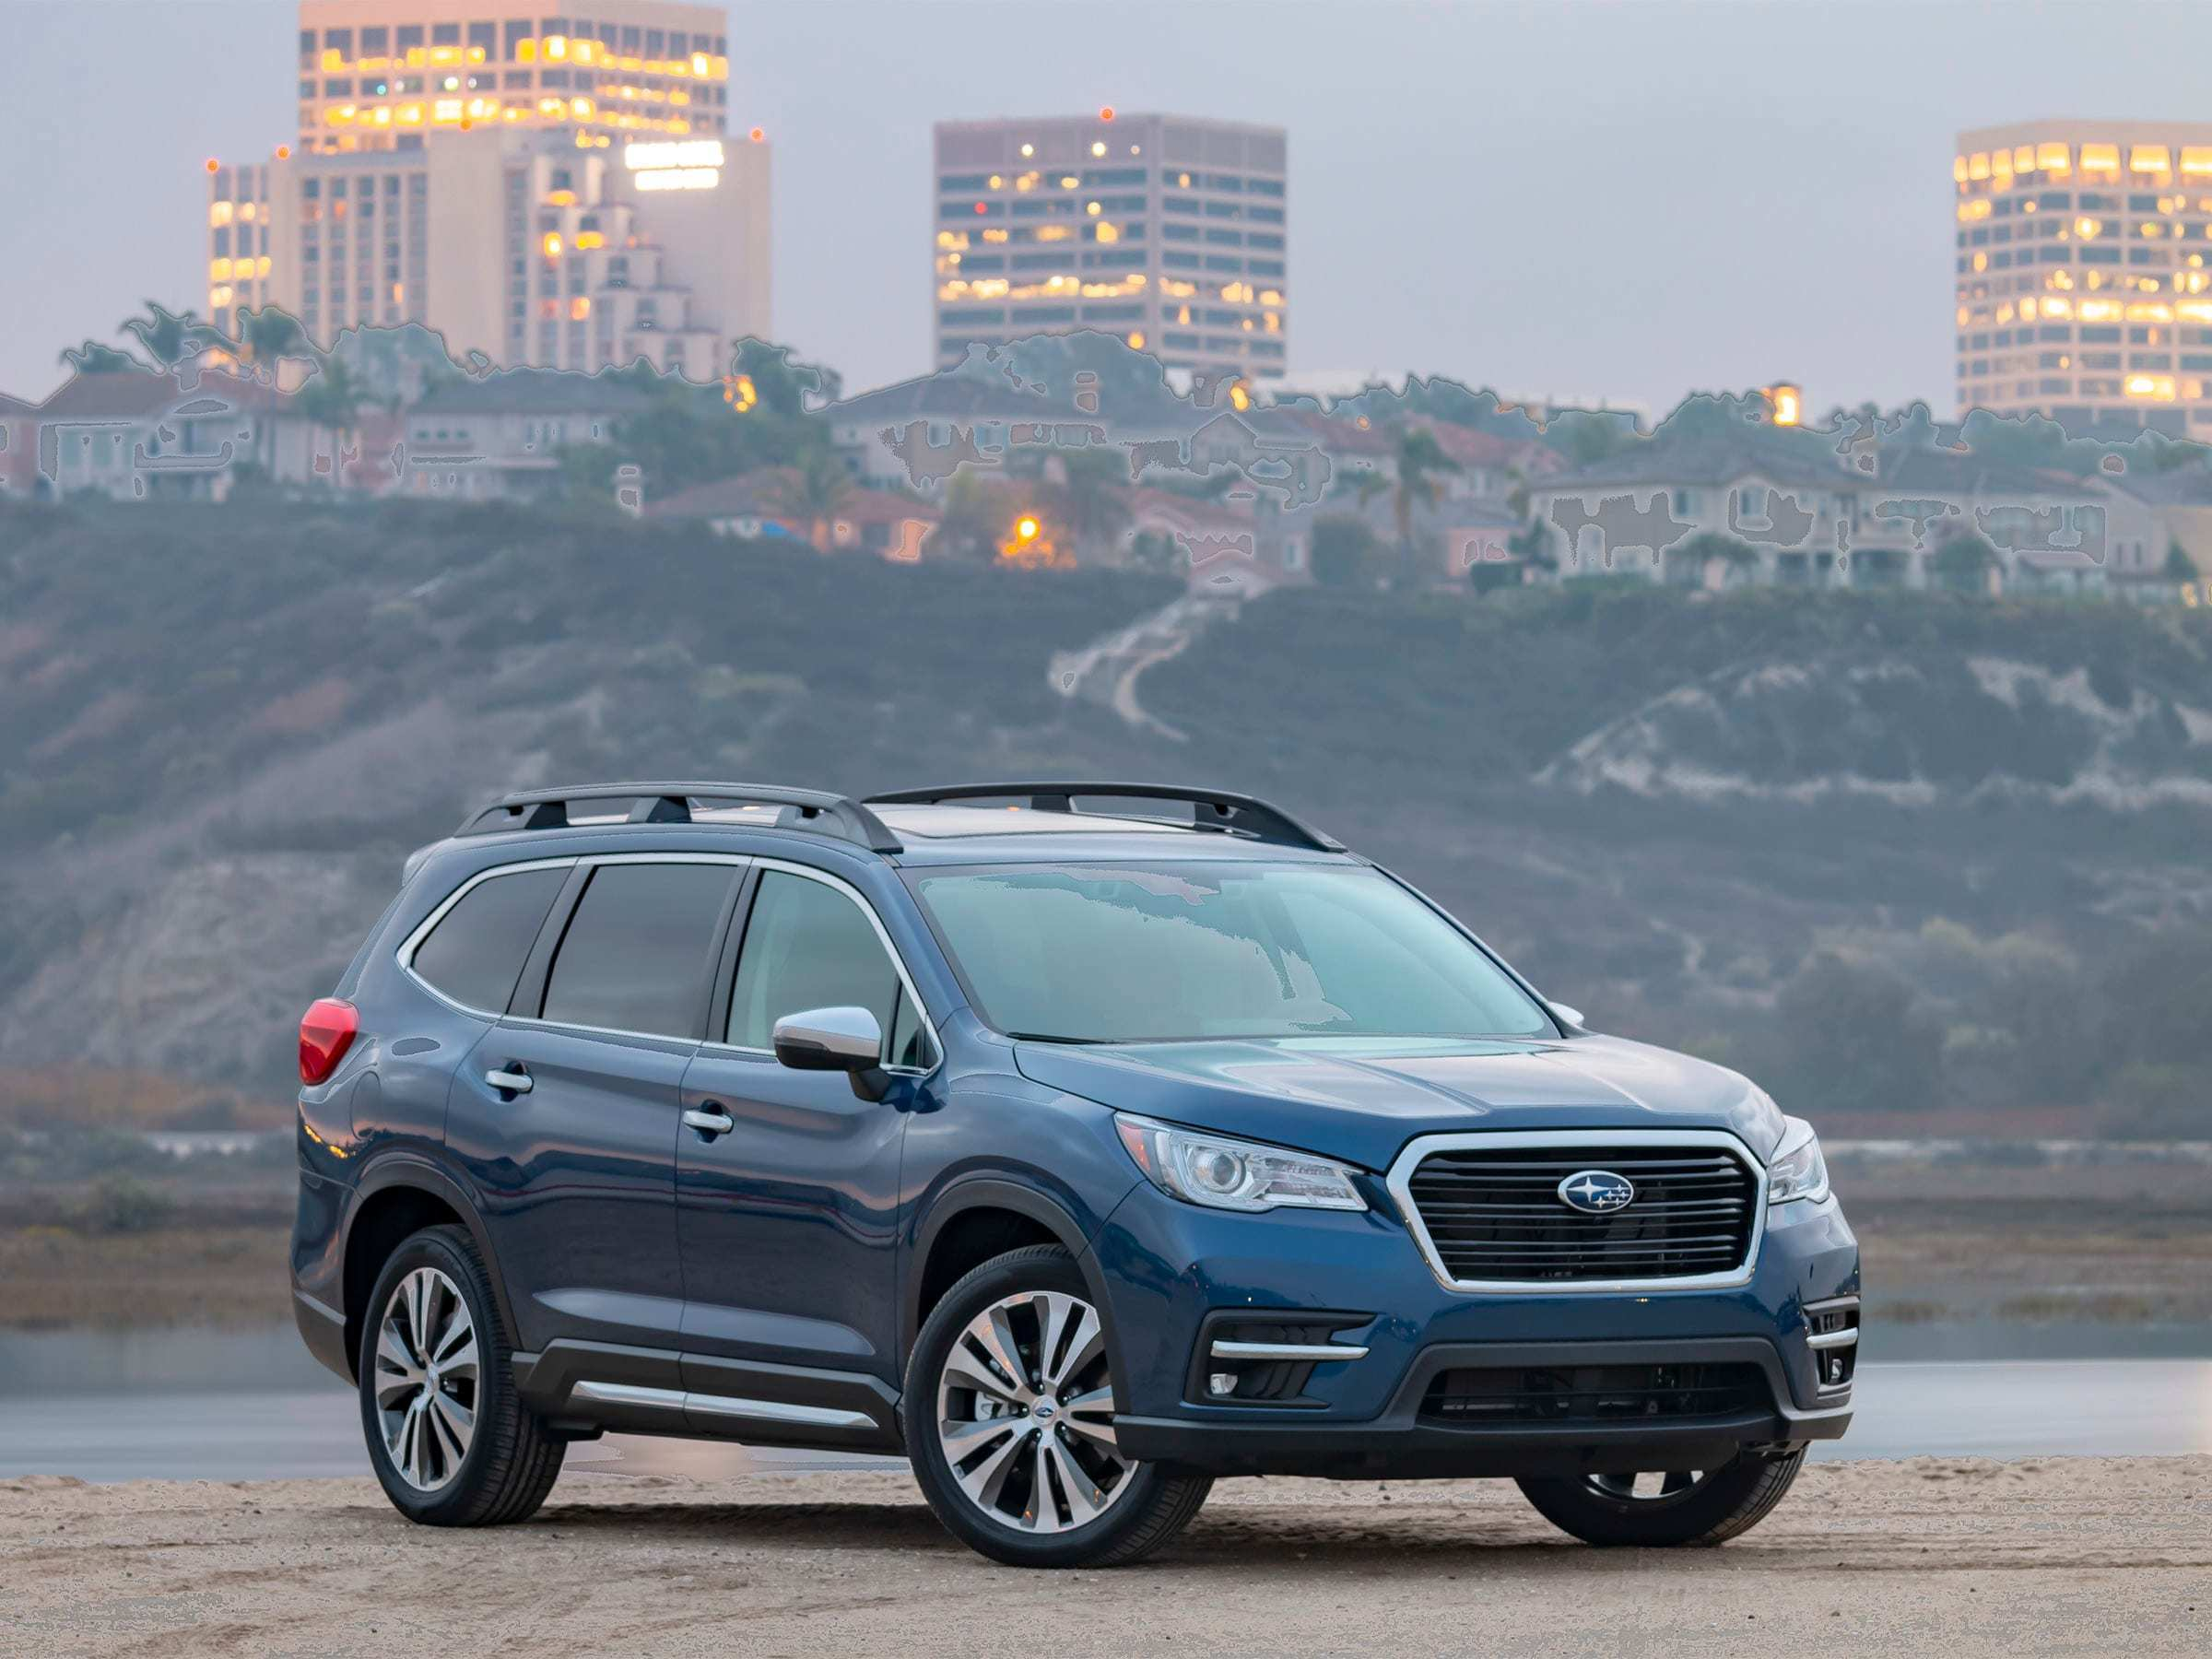 67 All New 2019 Subaru Ascent Exterior for 2019 Subaru Ascent